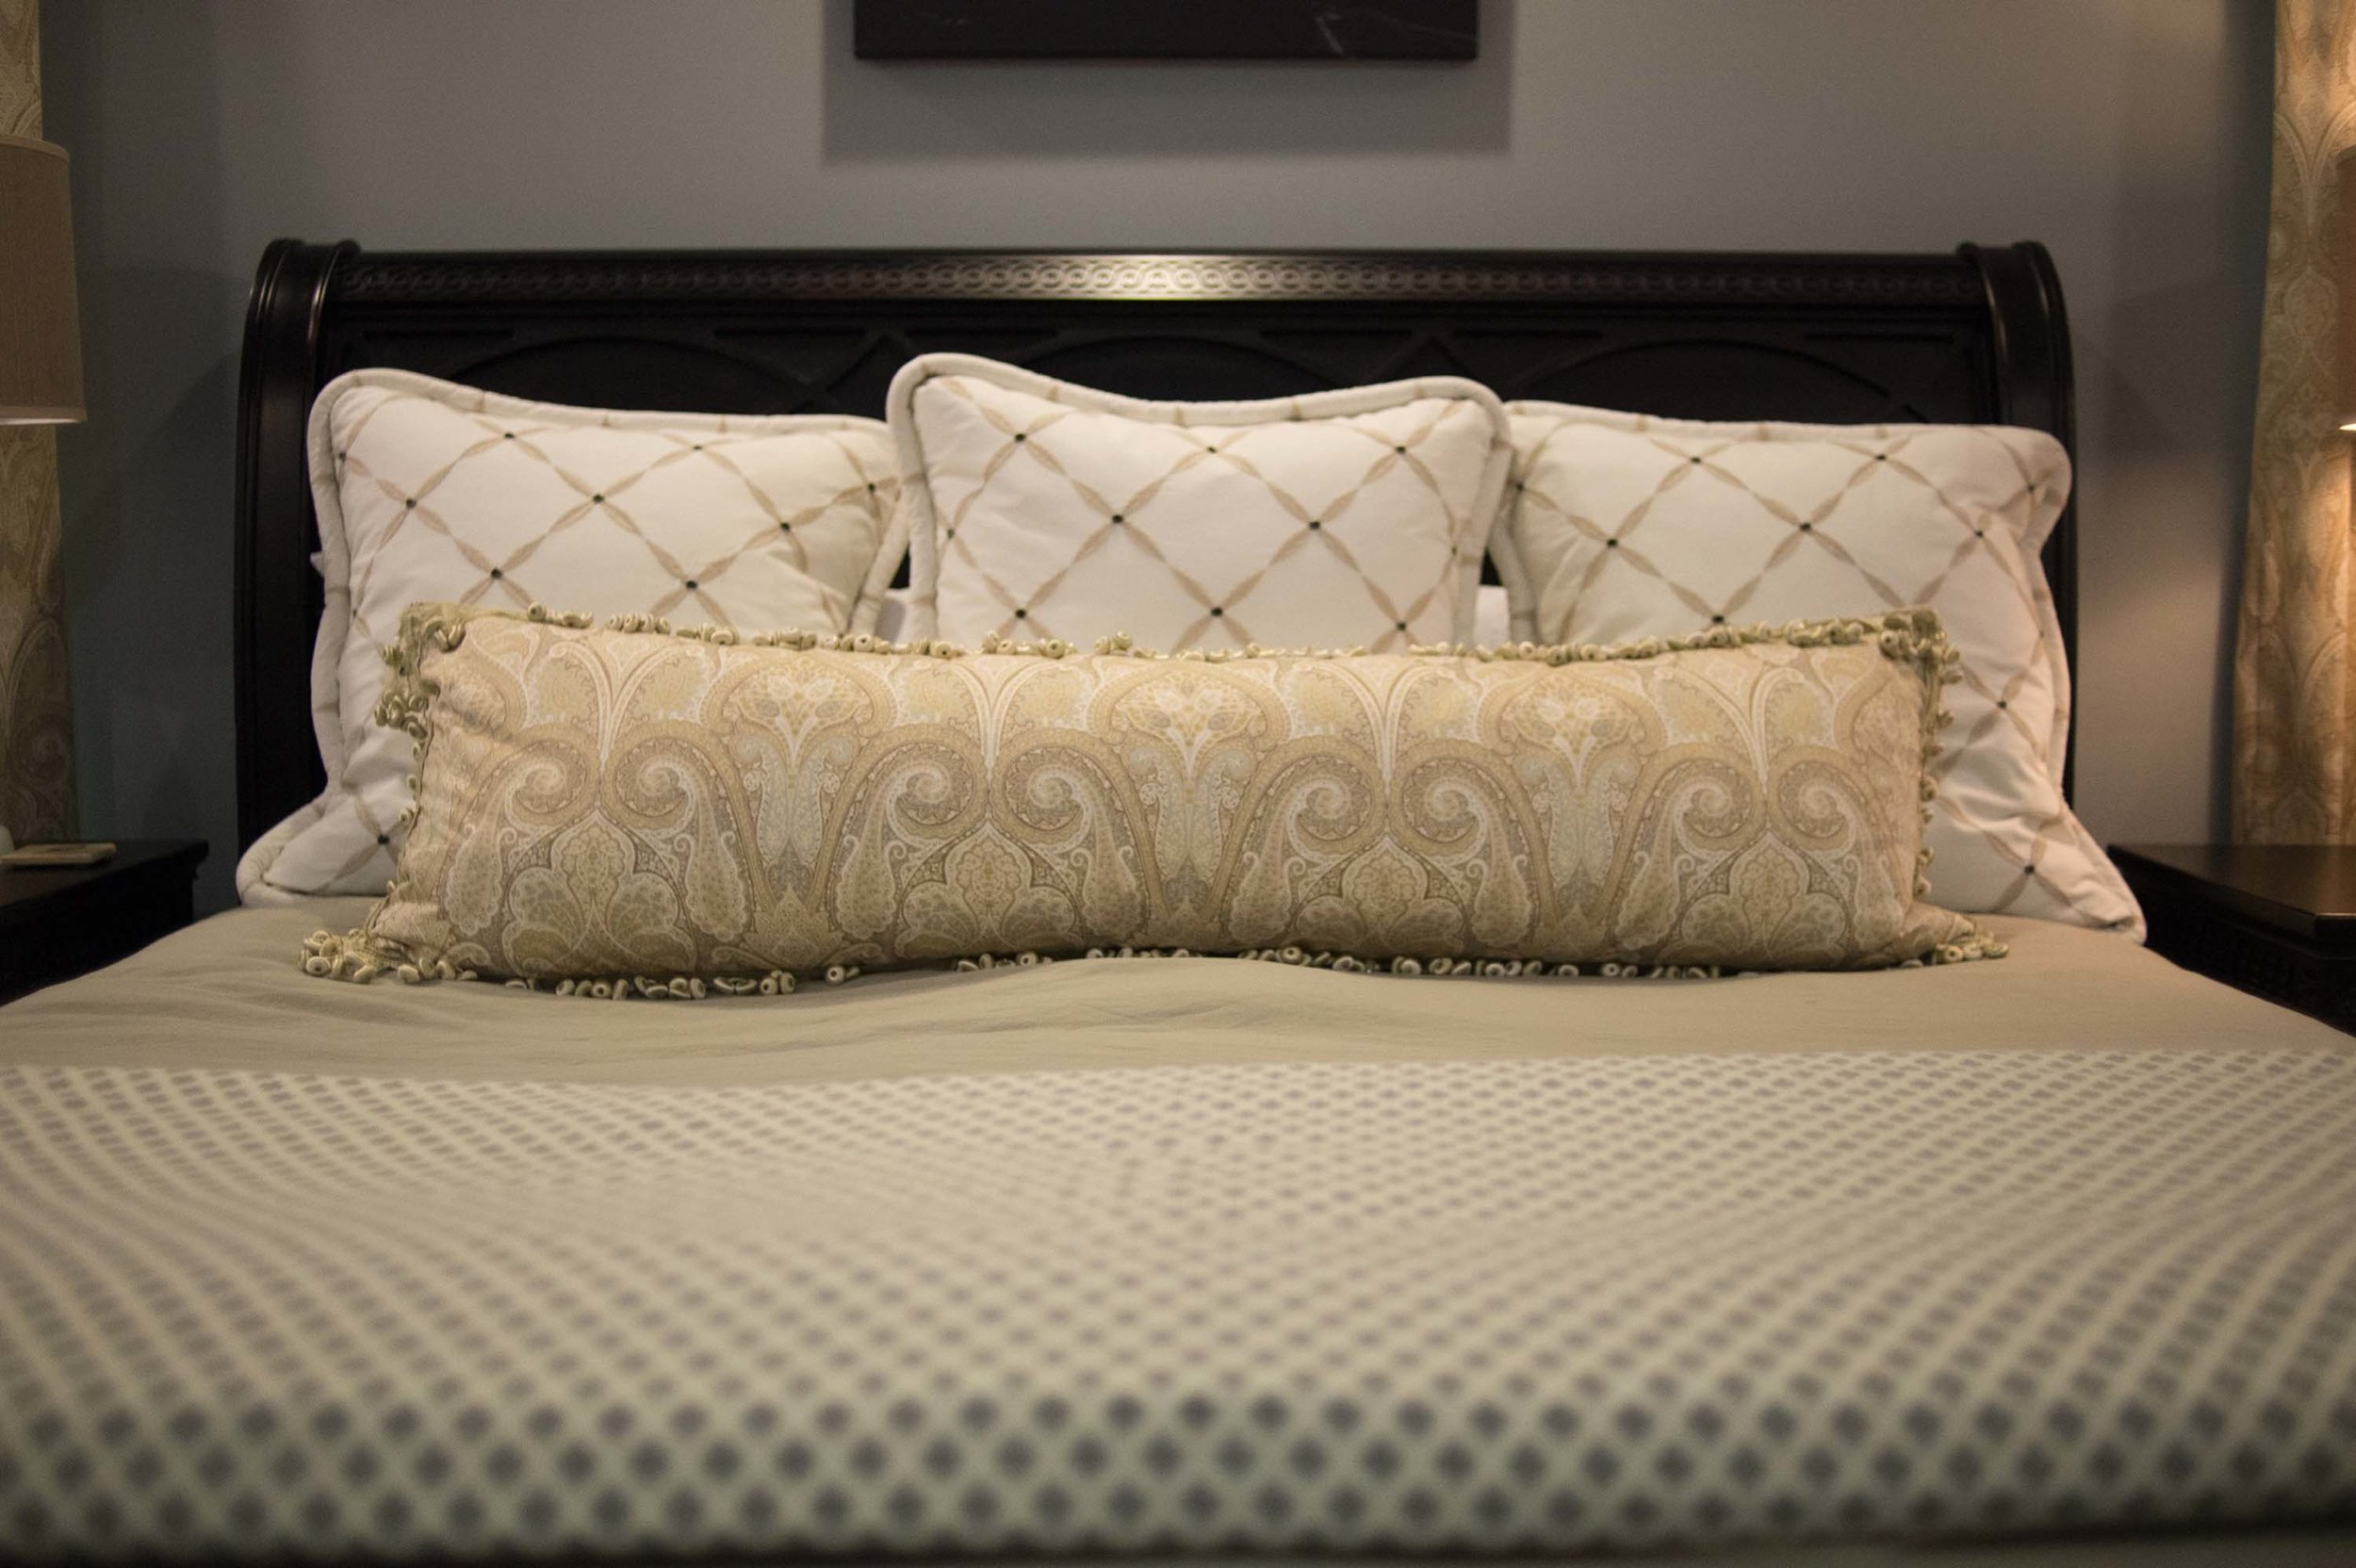 Custom Bedding with Euros, 19x60 Pillow, Coverlet and Bedscarf